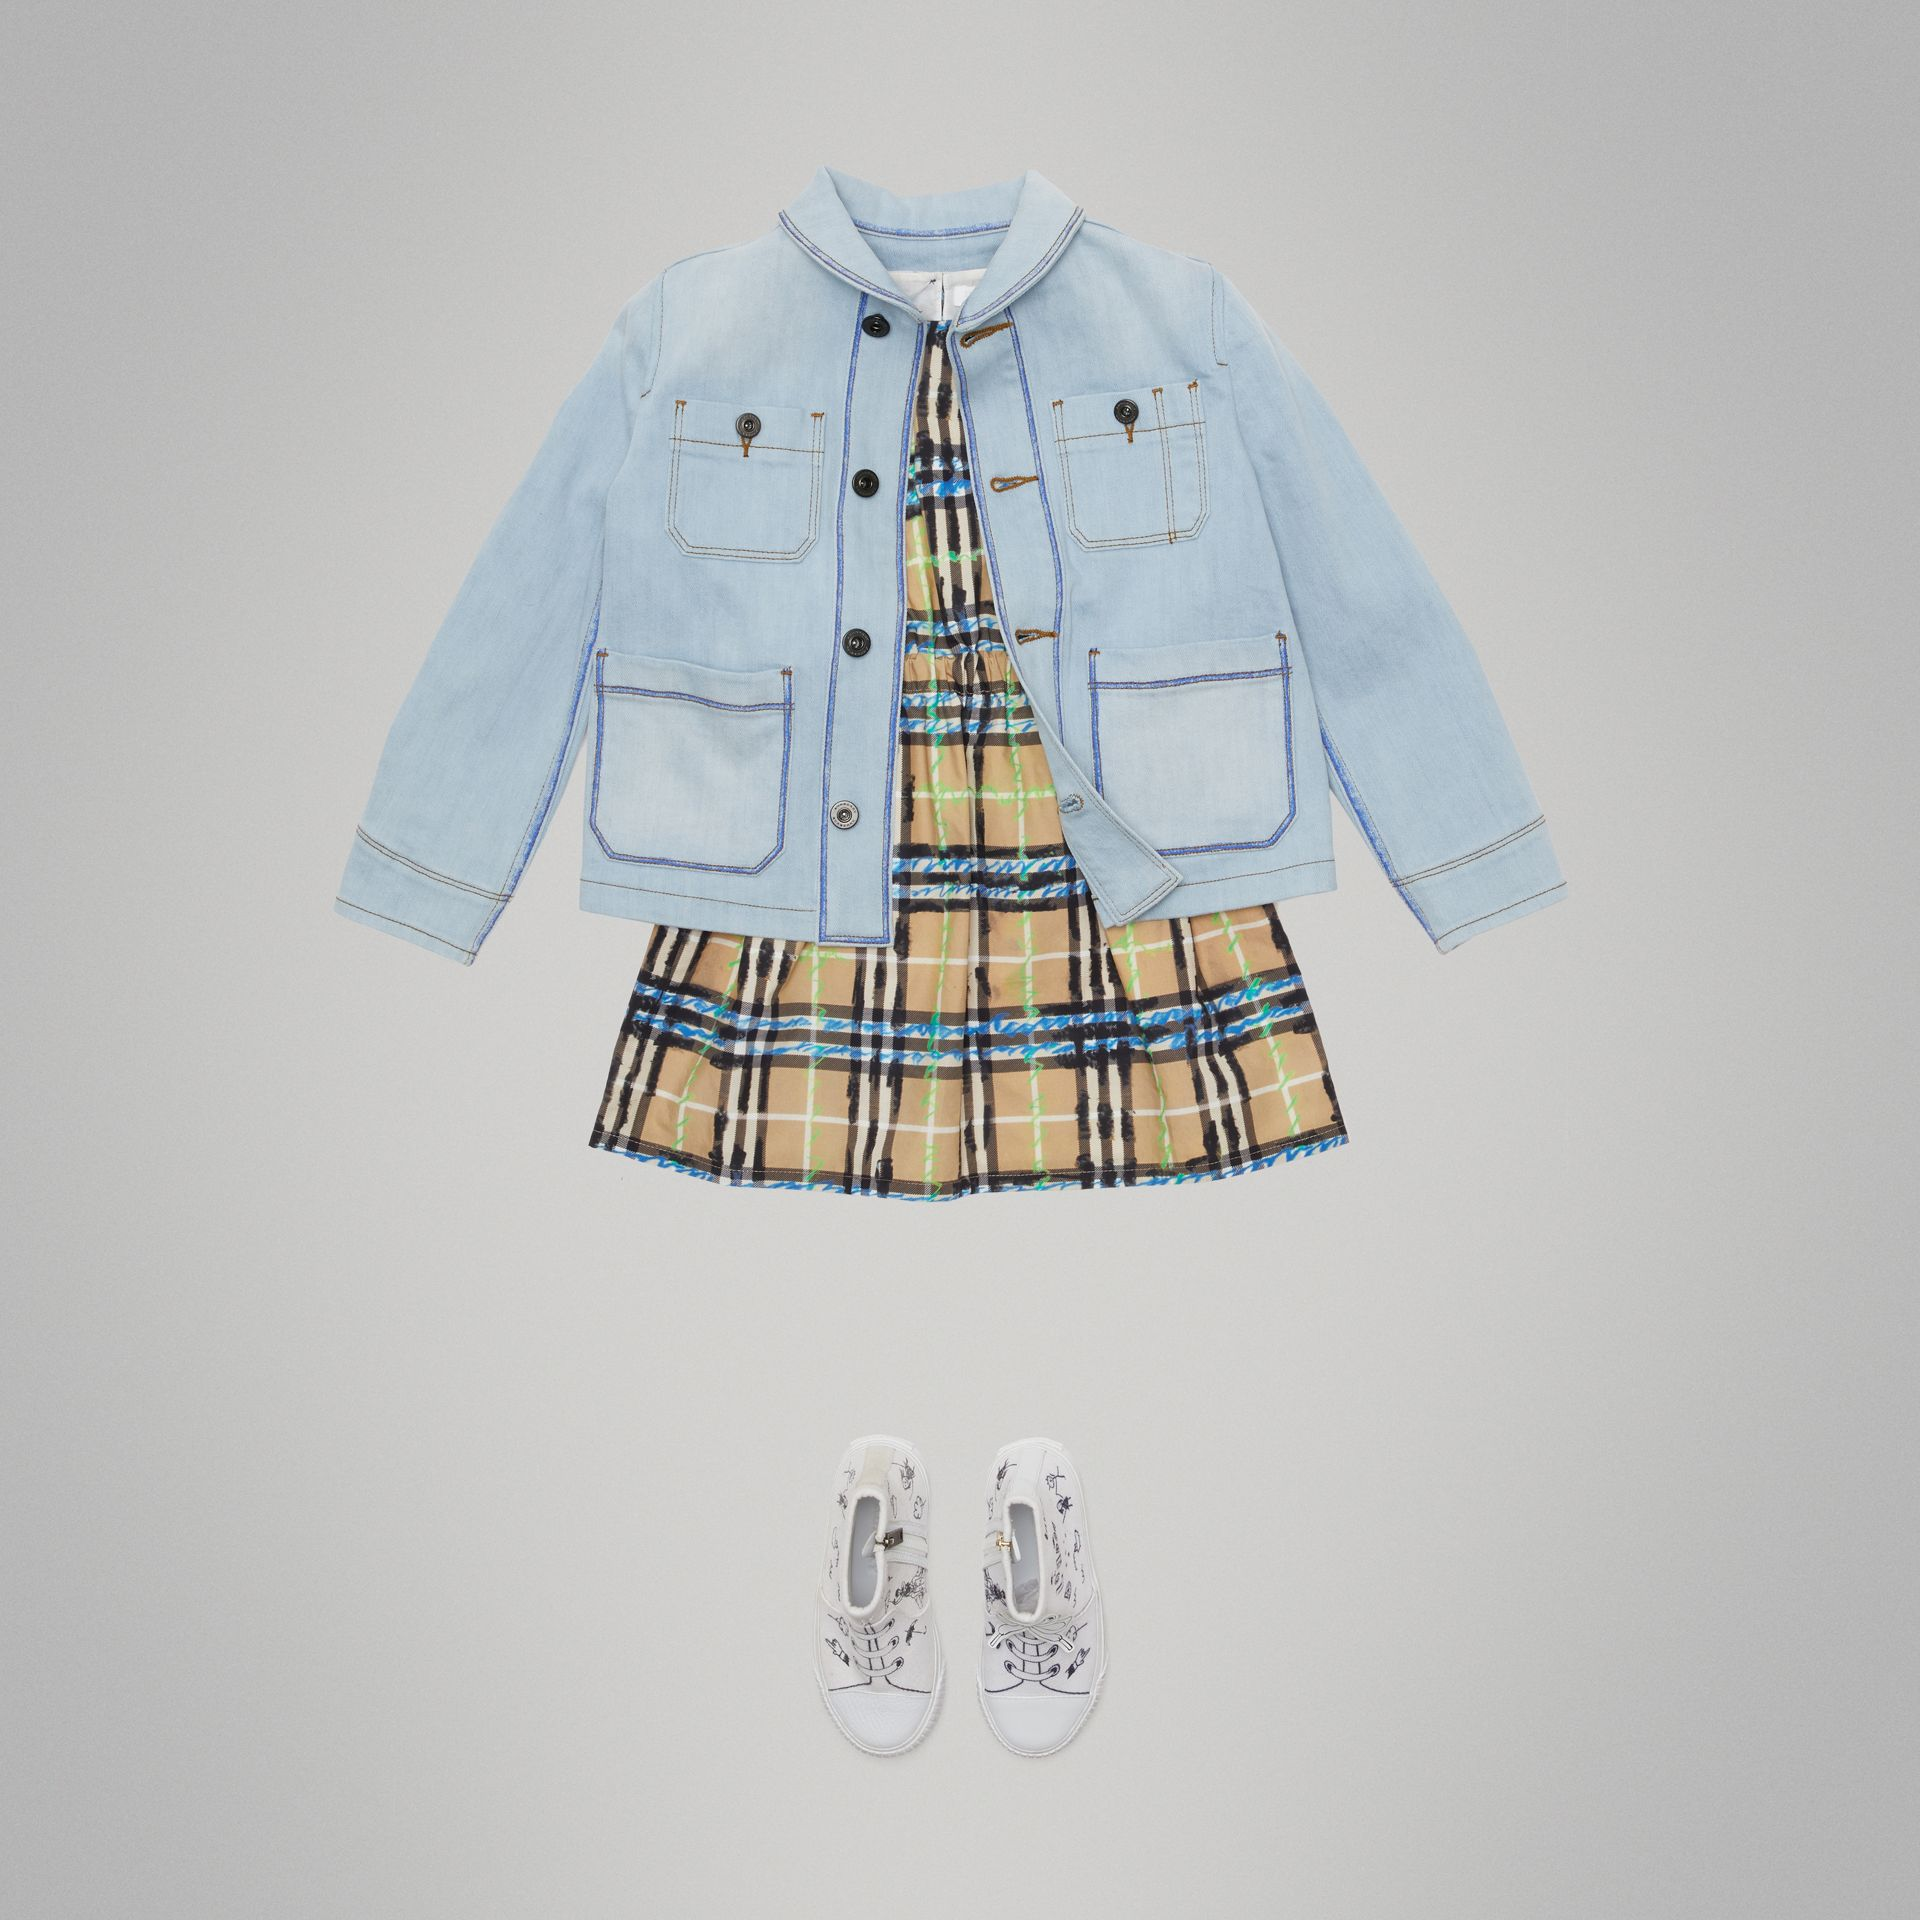 Marker Pen Print Denim Jacket in Light Blue - Girl | Burberry - gallery image 2